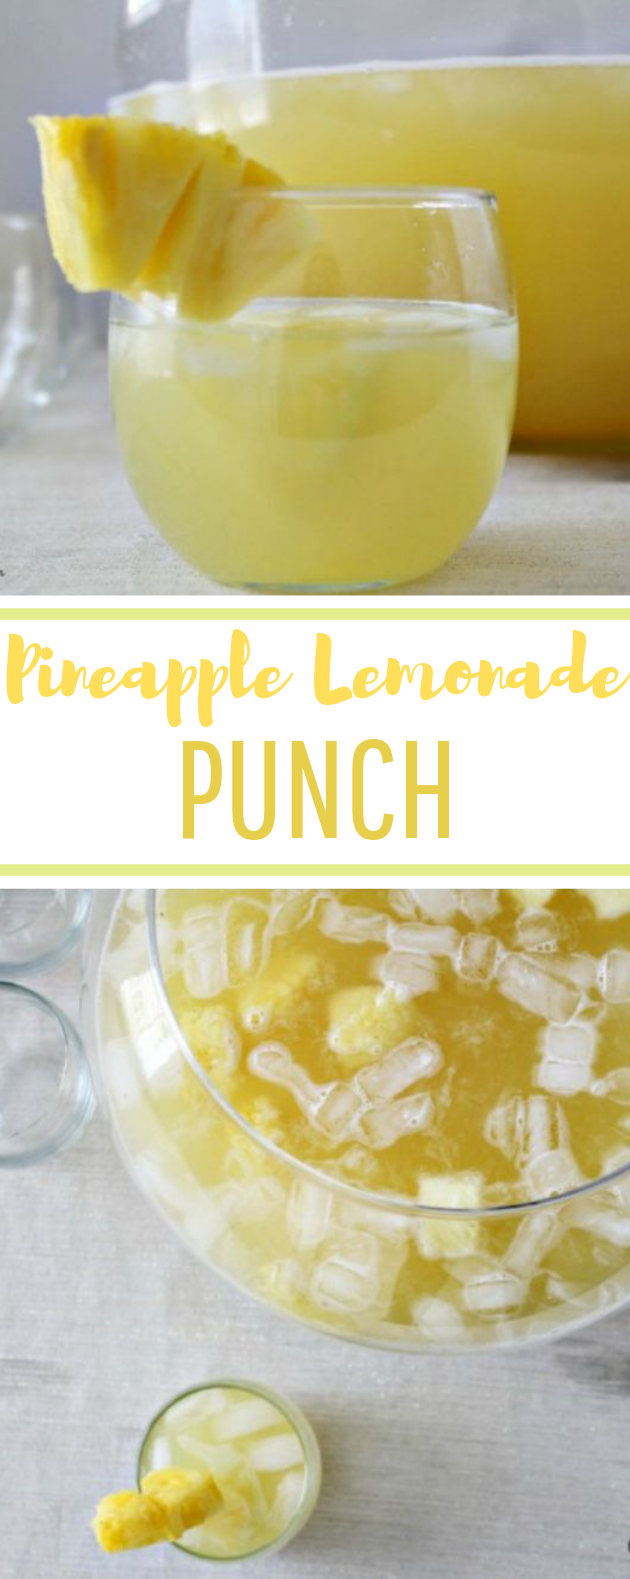 Pineapple Lemonade Punch #drink #party